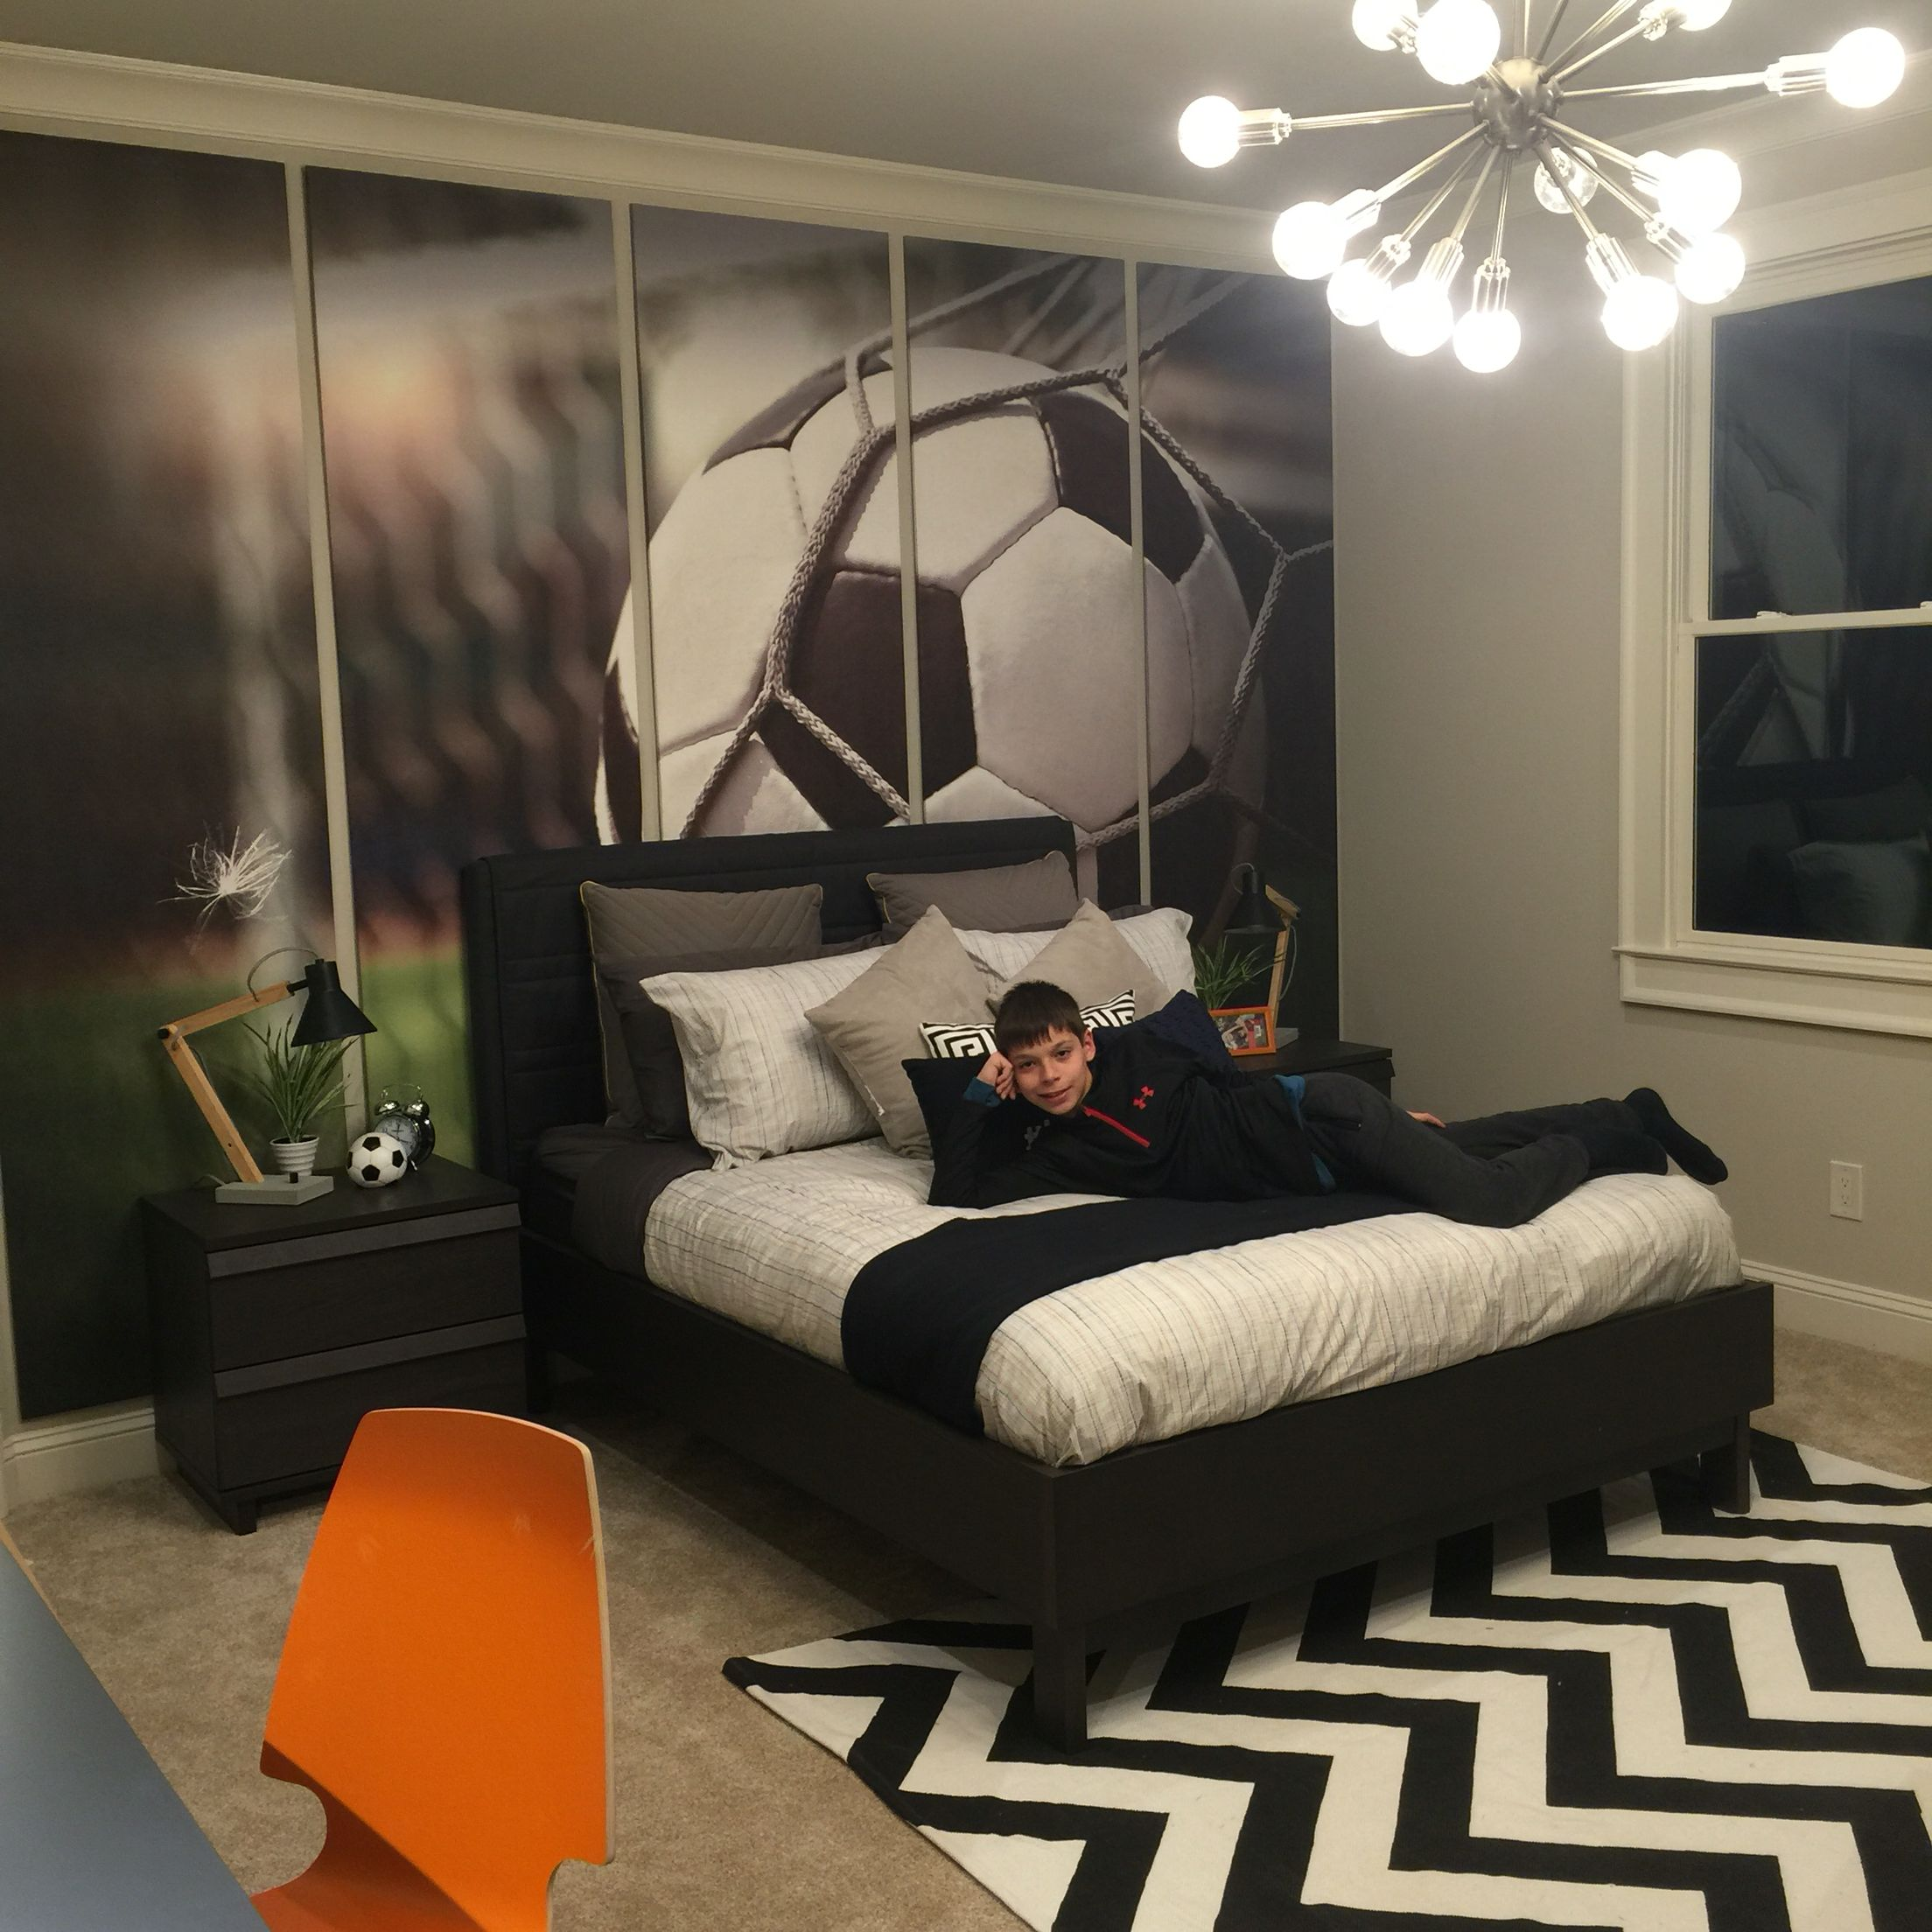 Delicieux Pre Teen Boy, Soccer Enthusiast Bedroom. #preteenbedroom #soccer #bedroomu2026